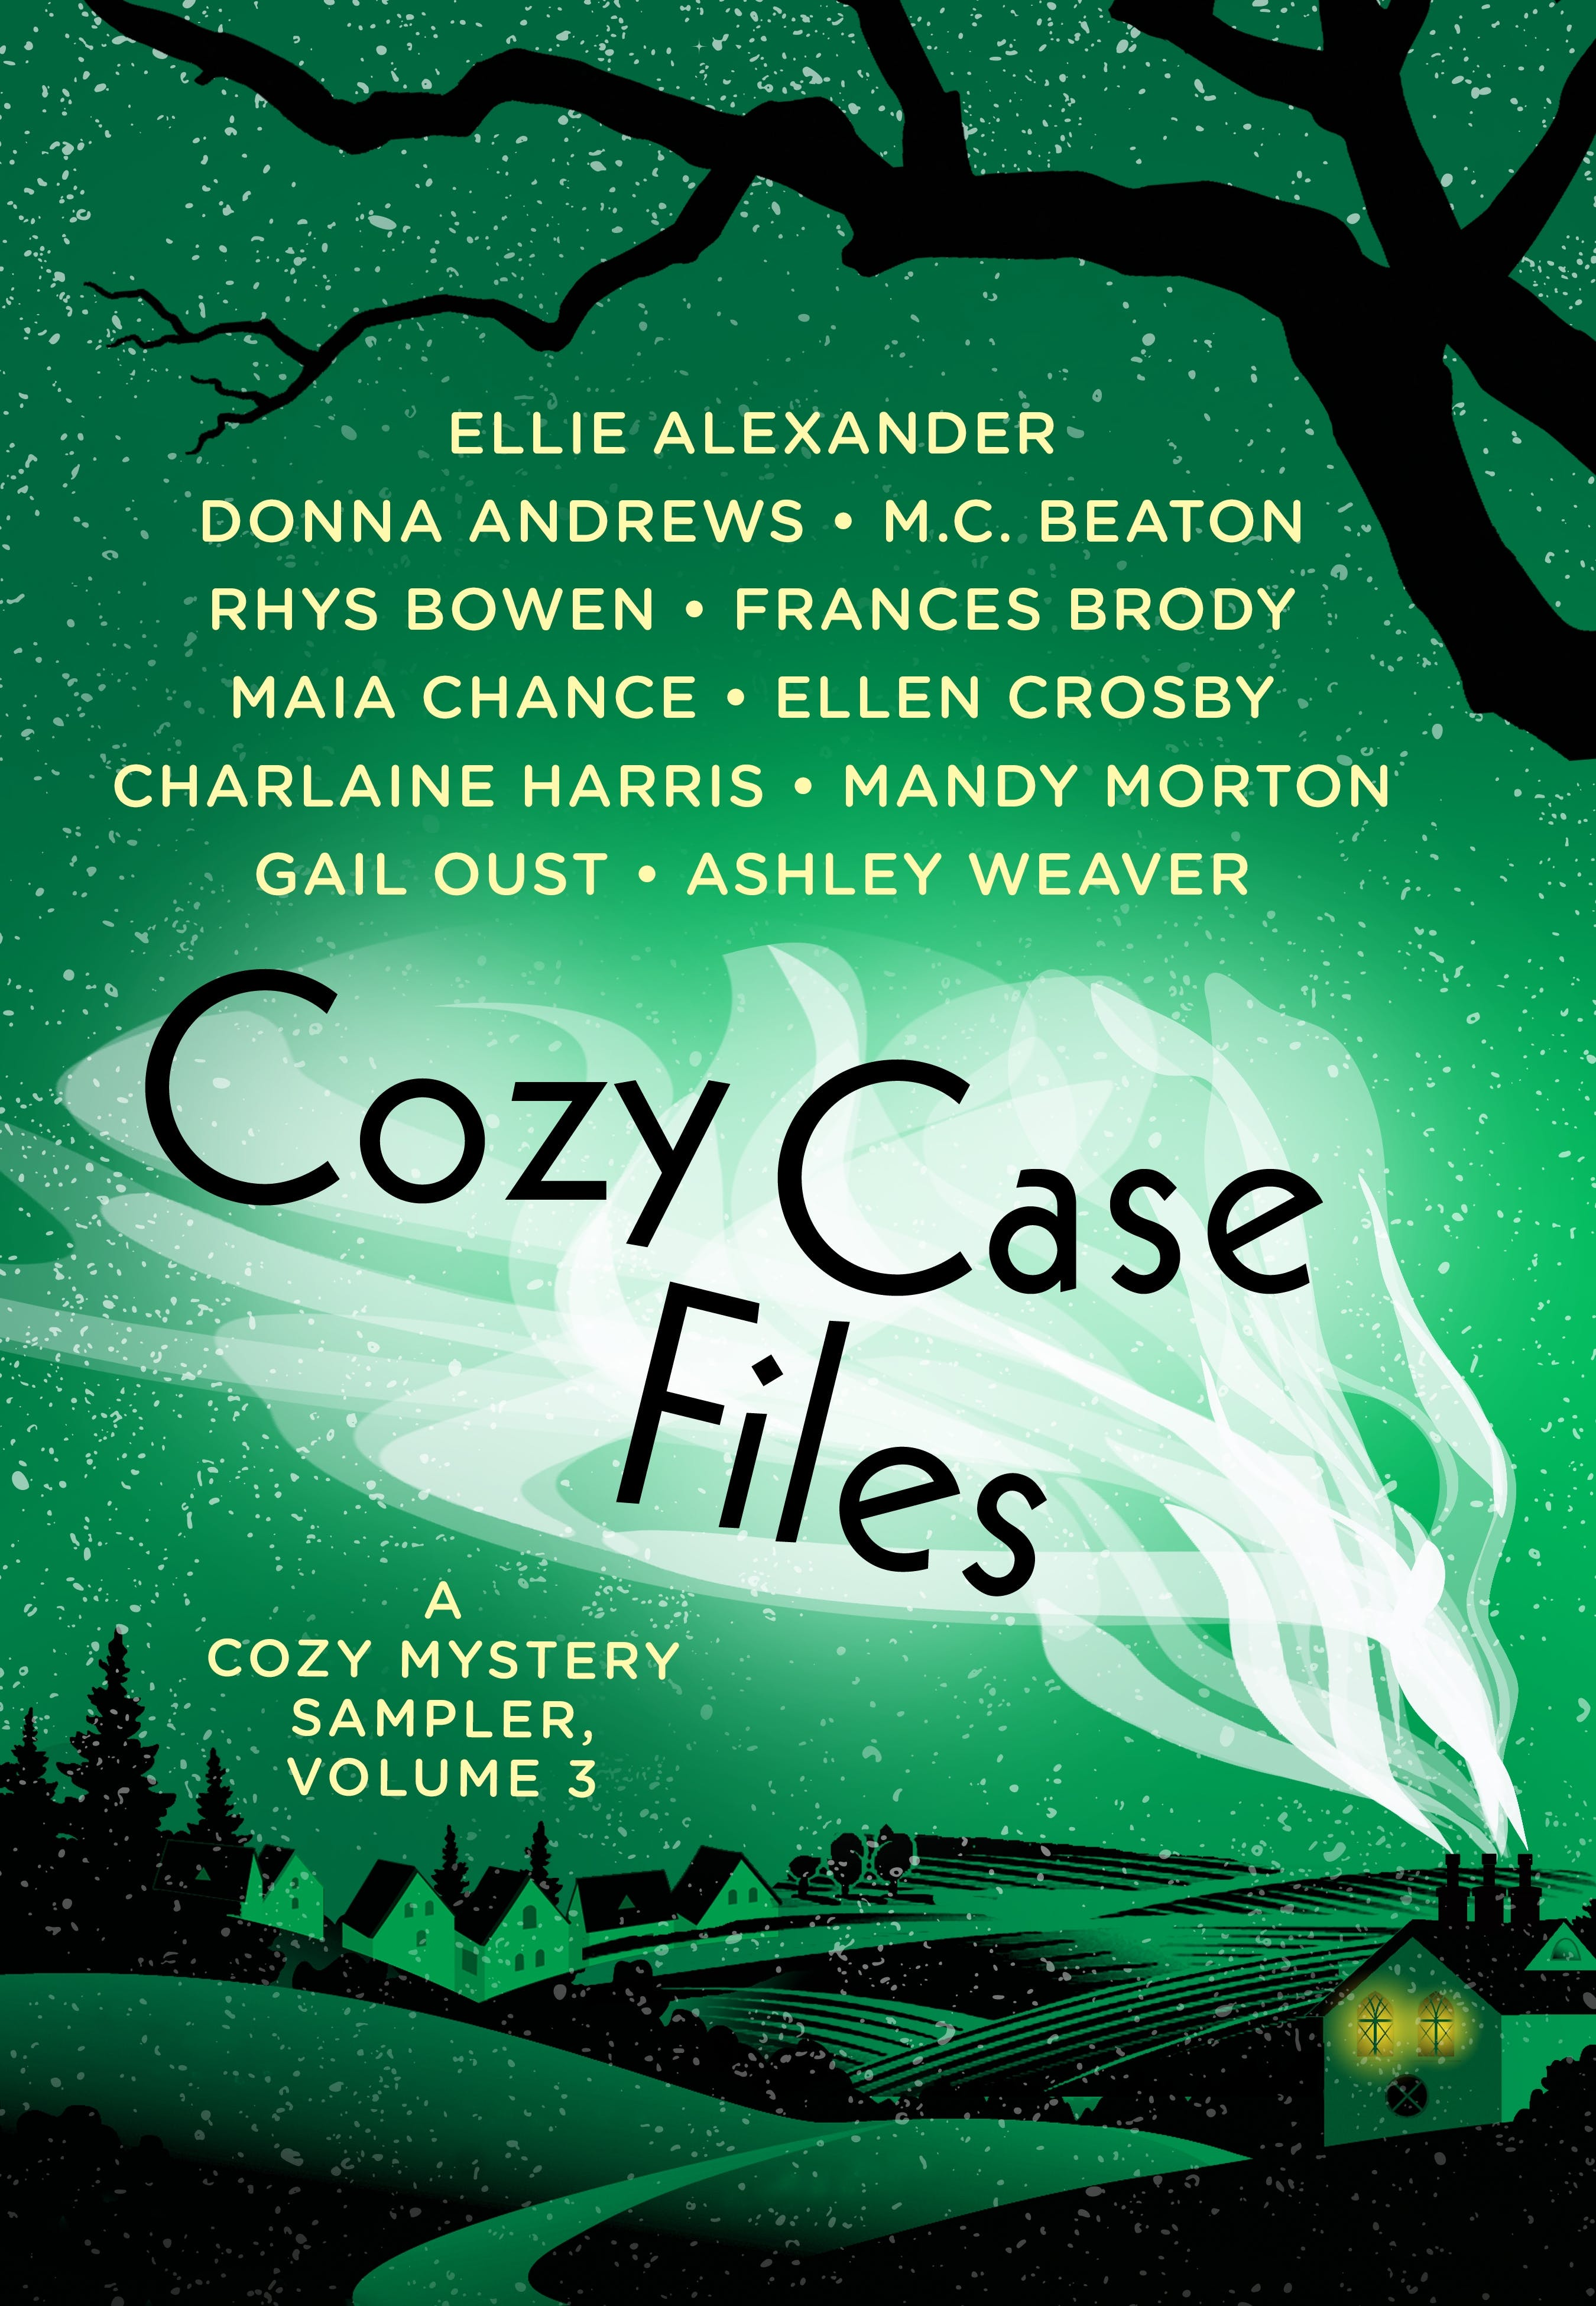 Image of Cozy Case Files: A Cozy Mystery Sampler, Volume 3